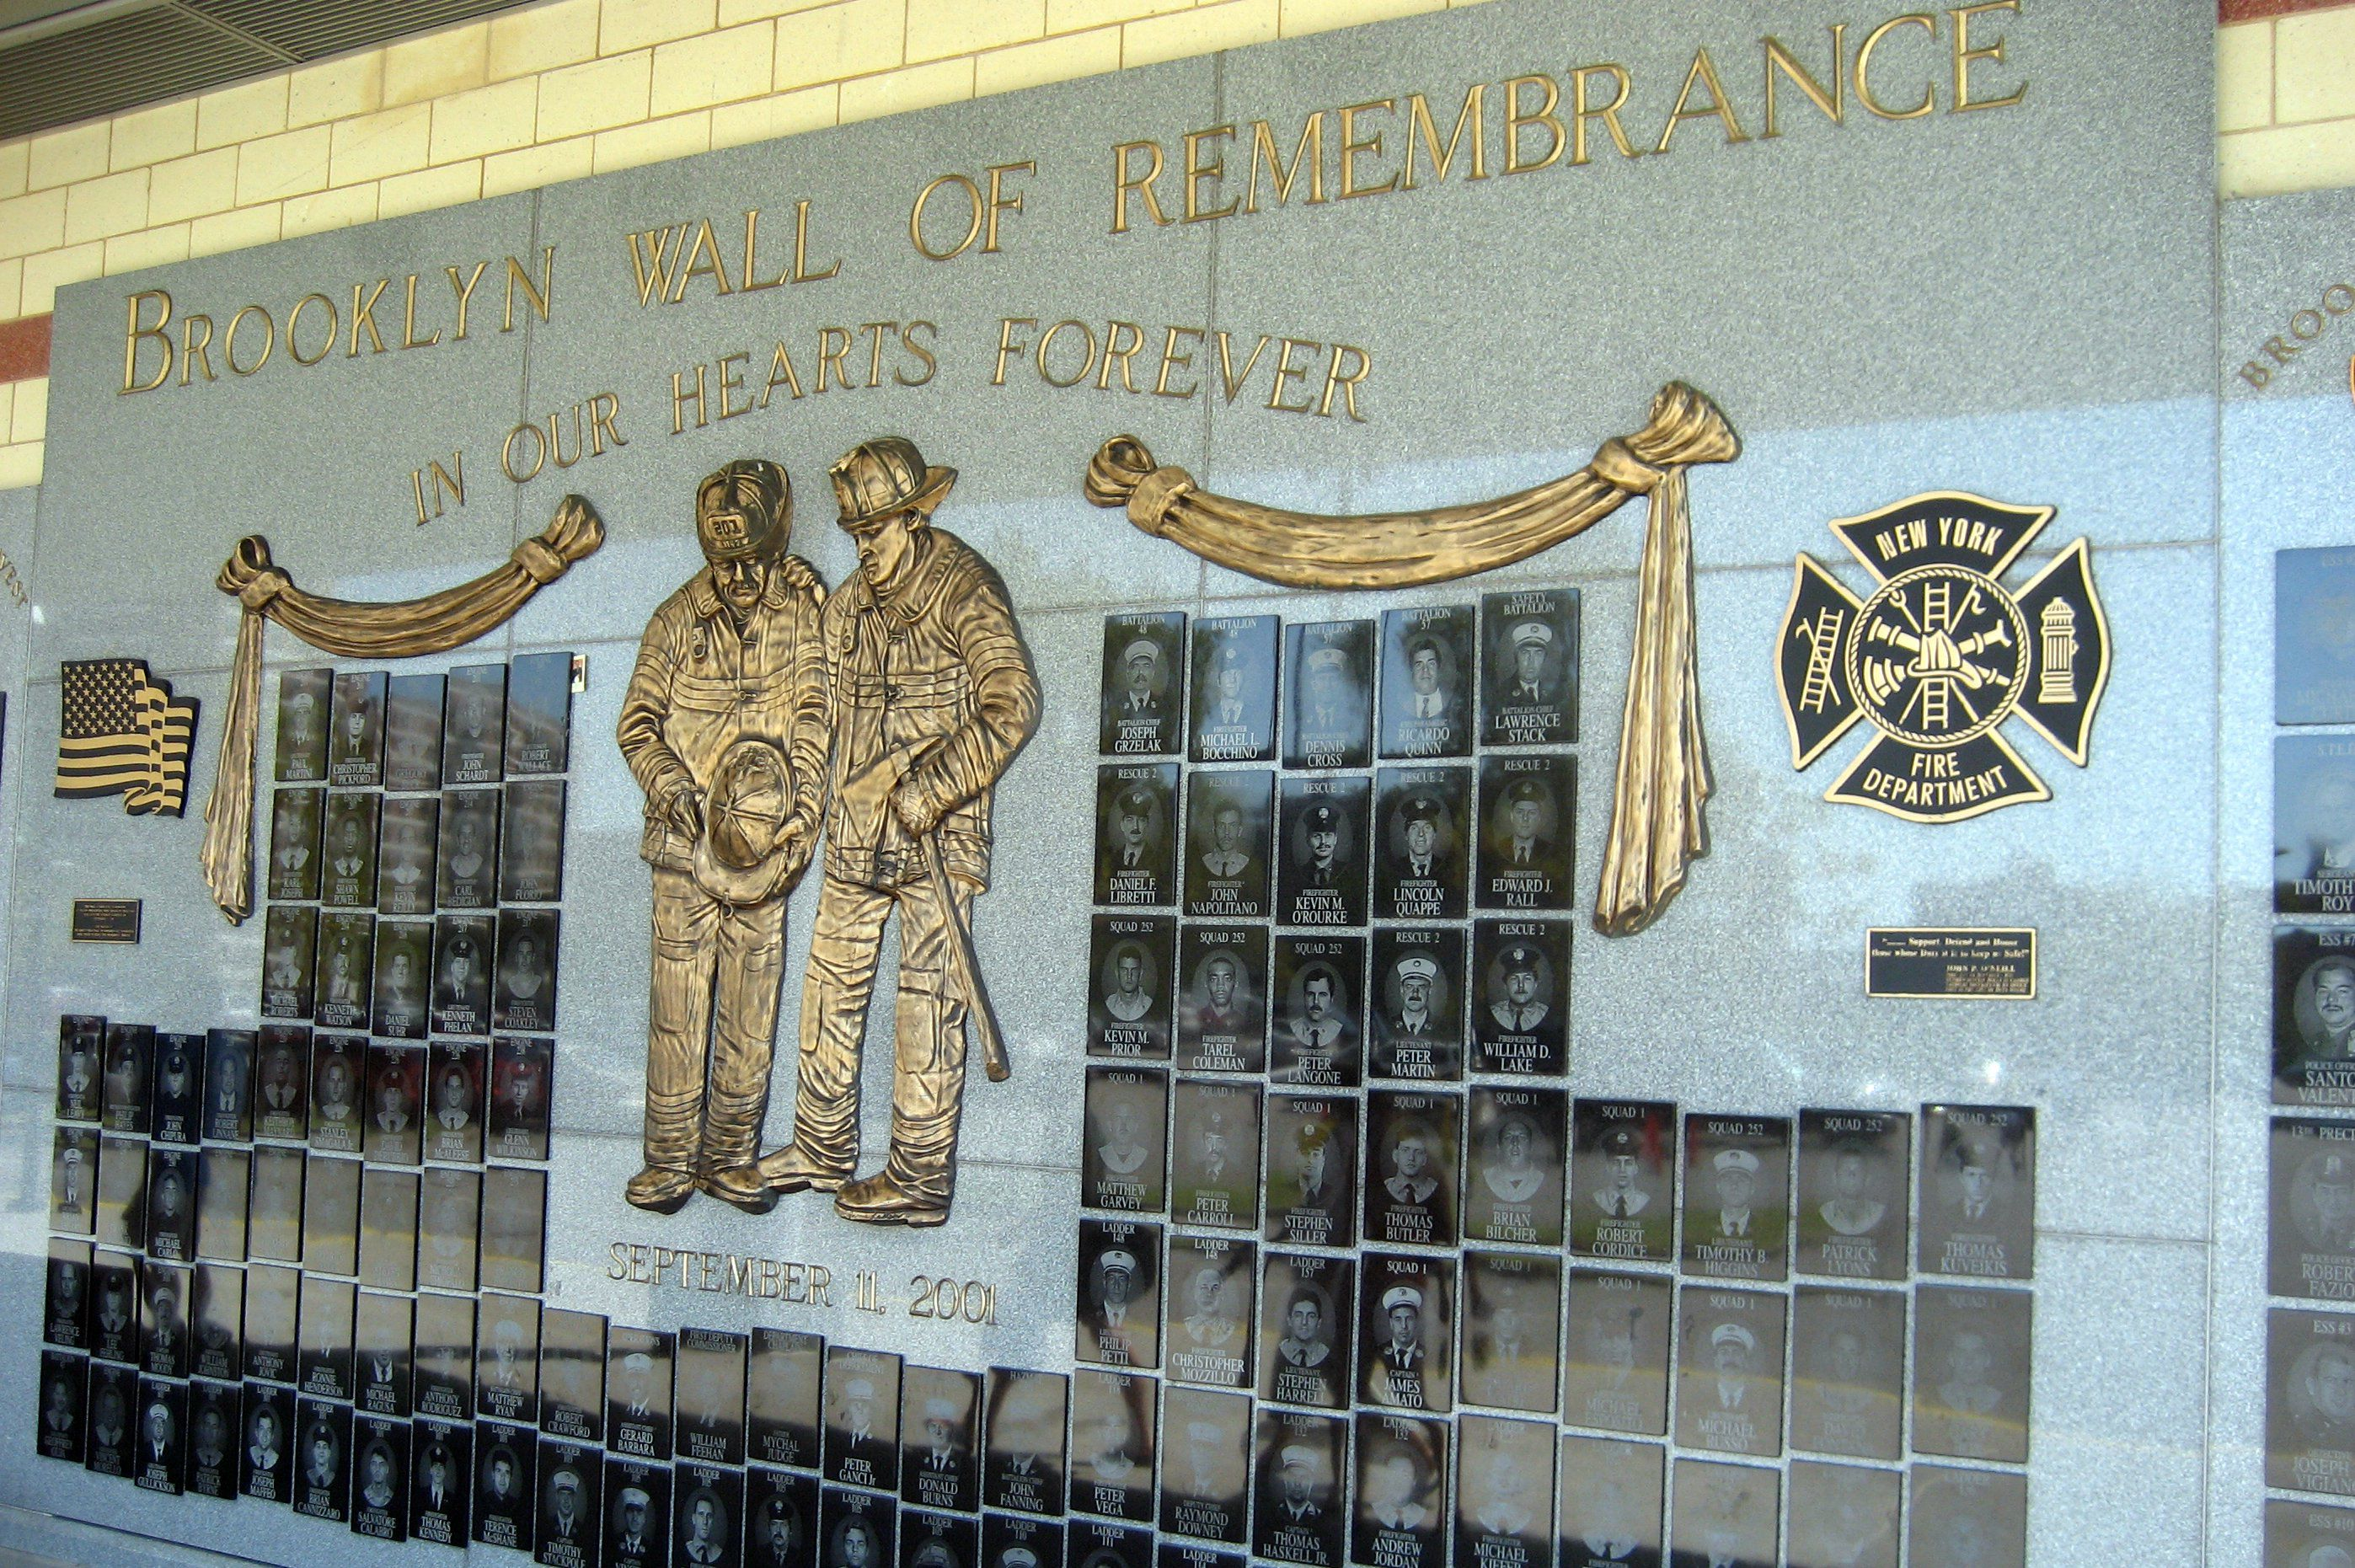 Brooklyn wall of remembrance